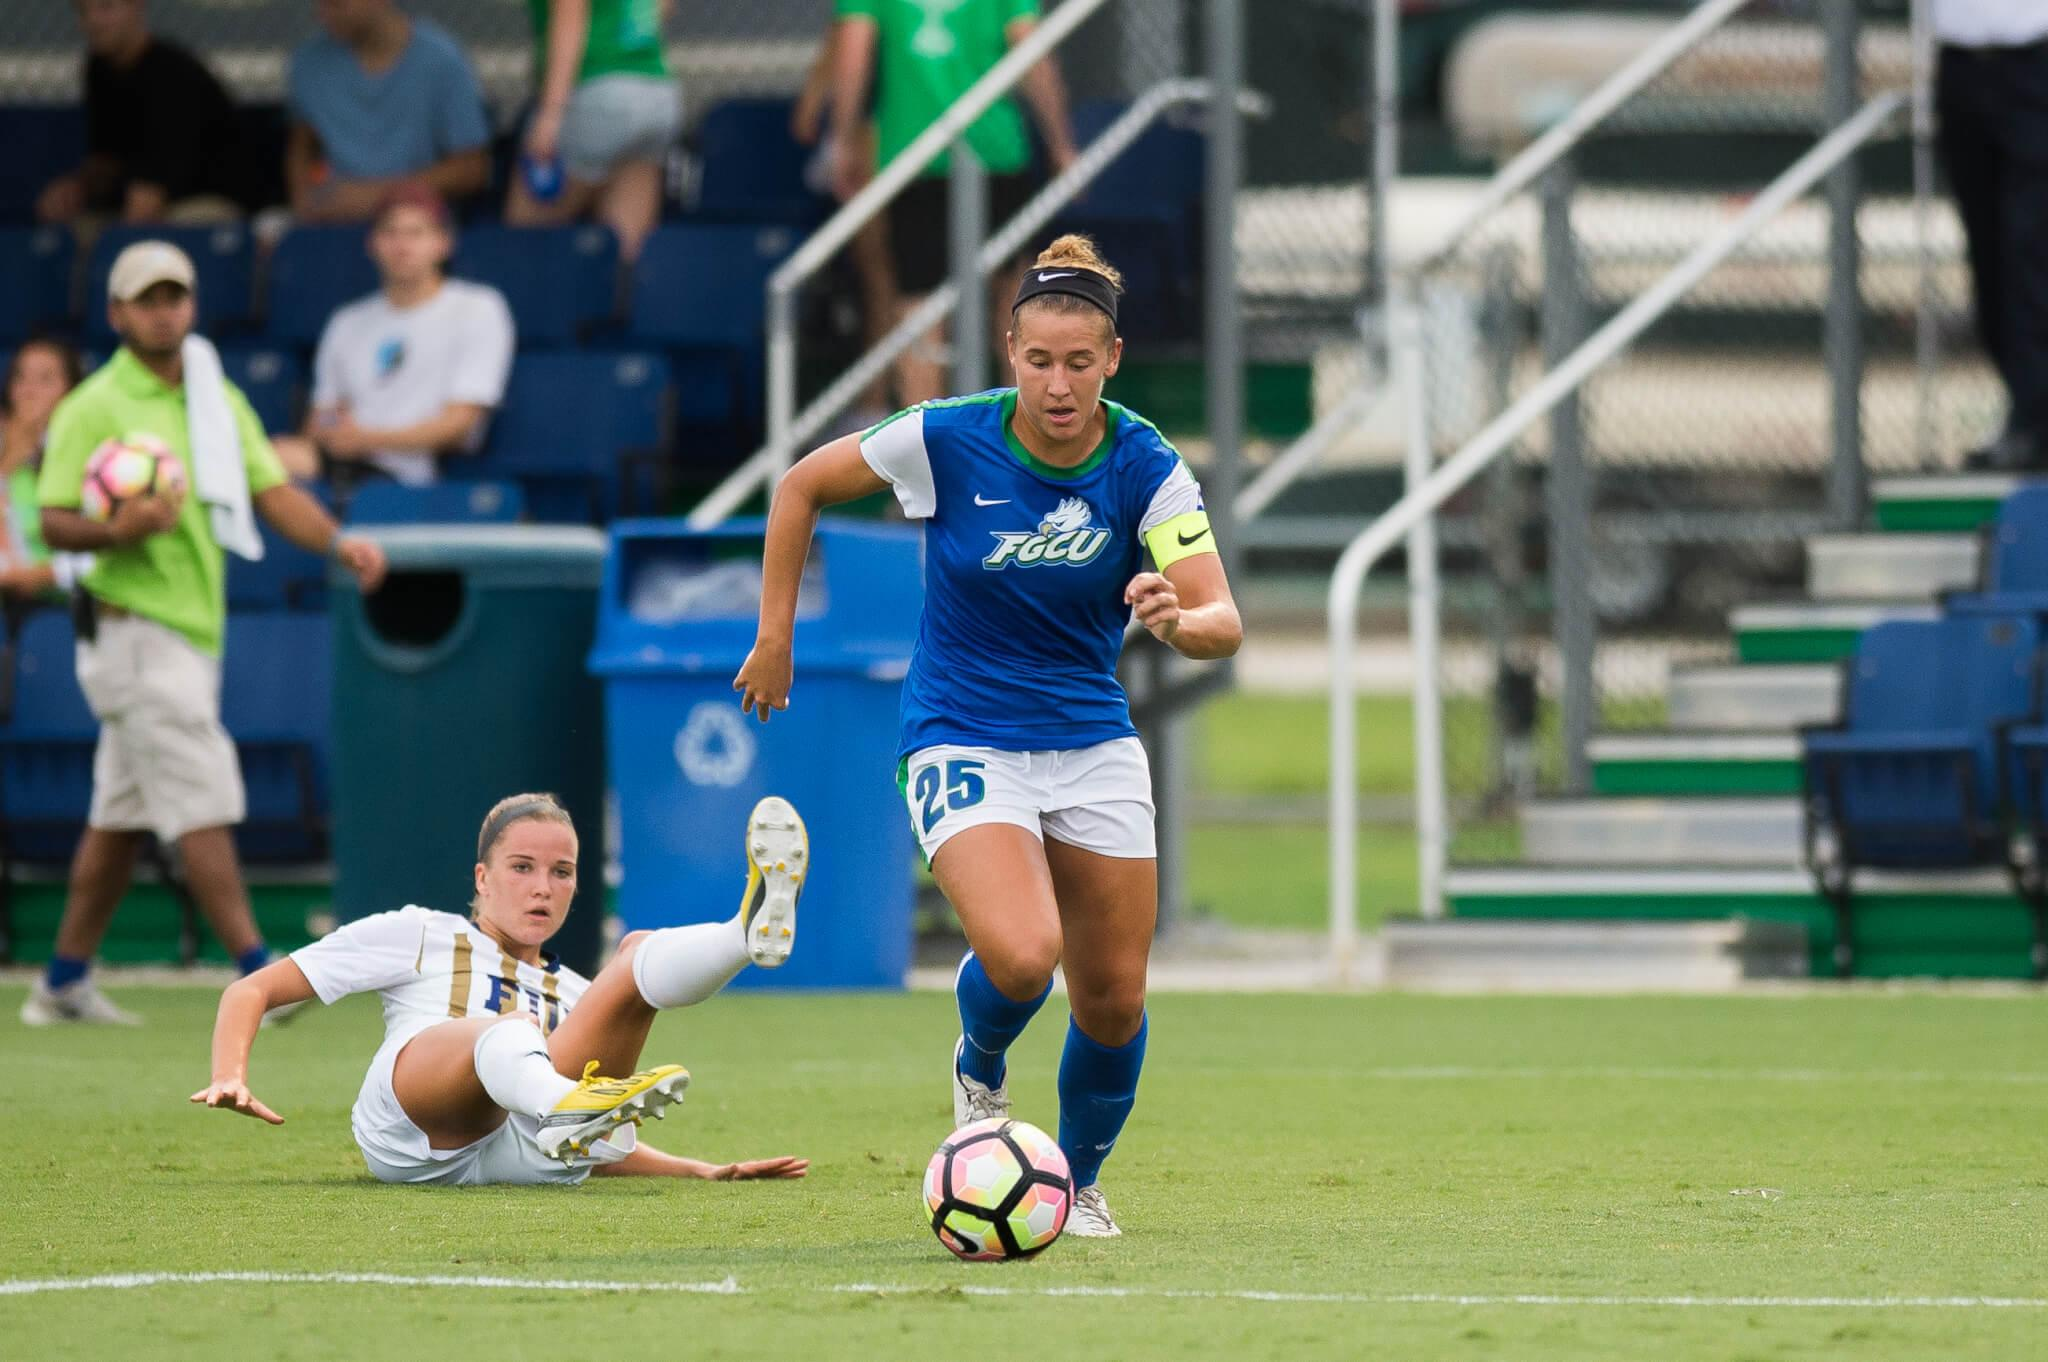 Tabby Tindell's late goal gives the Eagles a 1-0 victory over FIU